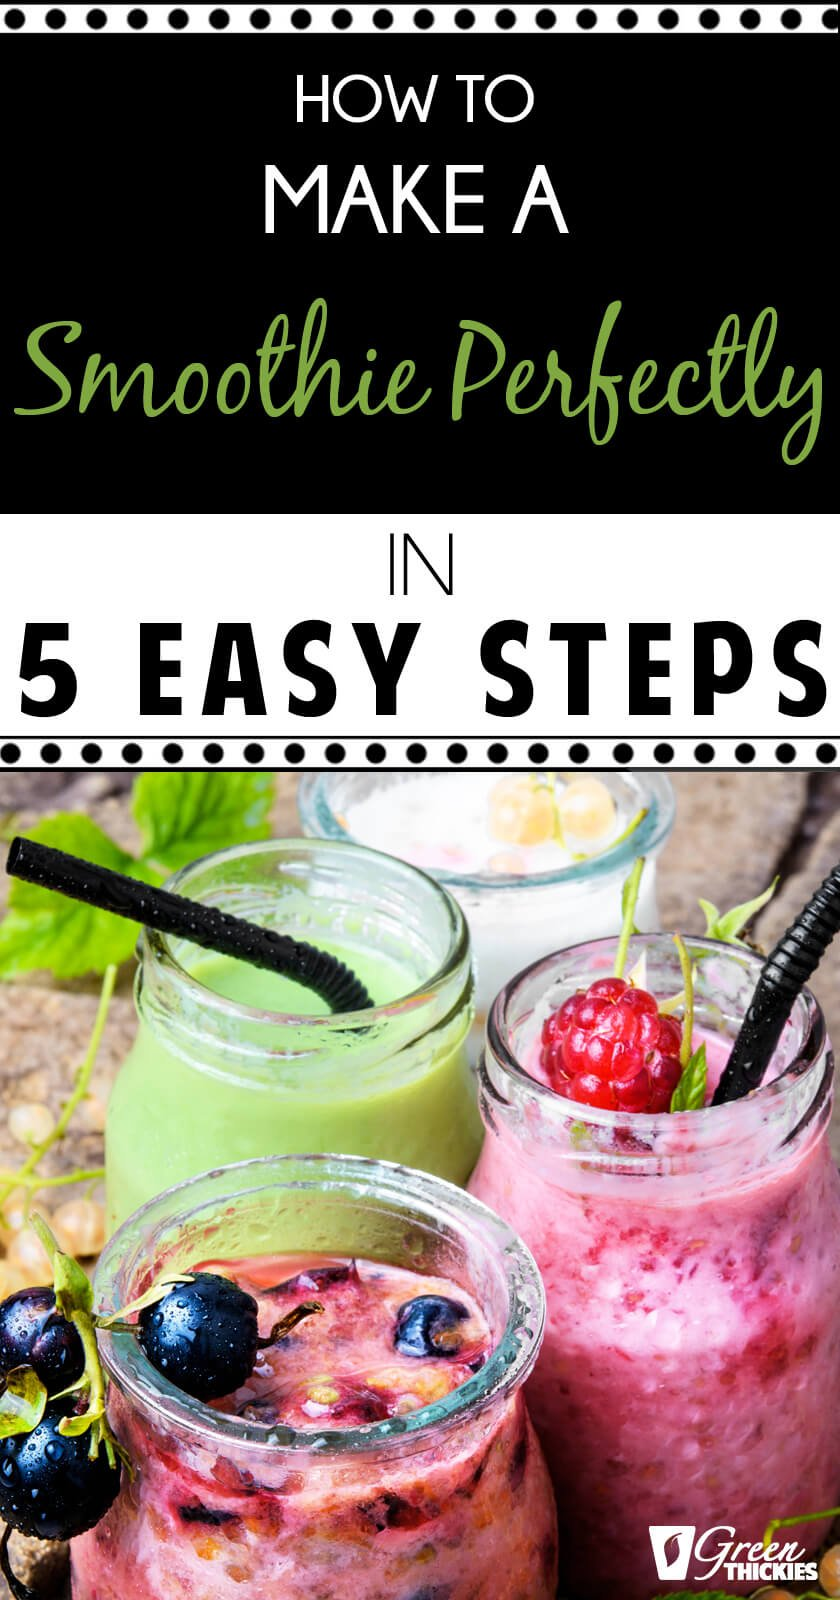 How to make a smoothie perfectly in 5 steps. The only guide to creating a healthy yet delicious smoothie you'll ever need.Just add your base, fruit, fillers, extras & healthy sweetener like dried fruit!#greenthickies #smoothie #fruit #fillers #fillingsmoothie #naturalsweetener #smoothiemaking #smoothieguide #delicious #healthy #vegan #homemade #glutenfree #dairyfree #sugarfree #healthysmoothie #driedfruit #healthysweetener #stevia #banana #avocado #spinach #kale #pineapple